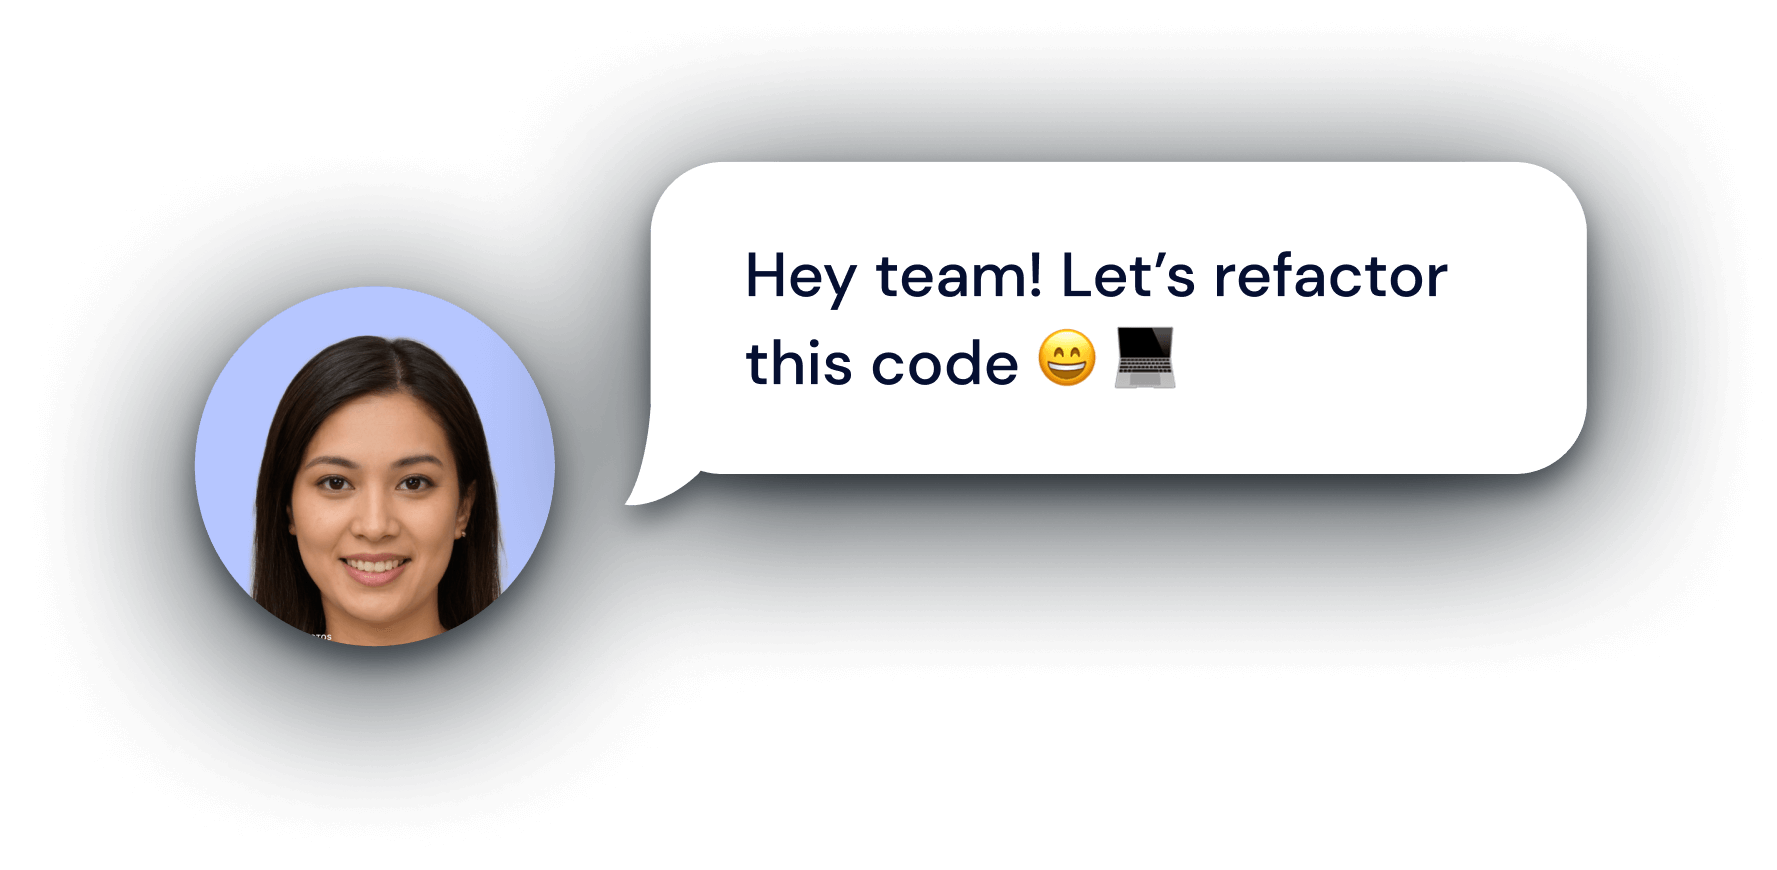 A woman asking her team to refactor the code